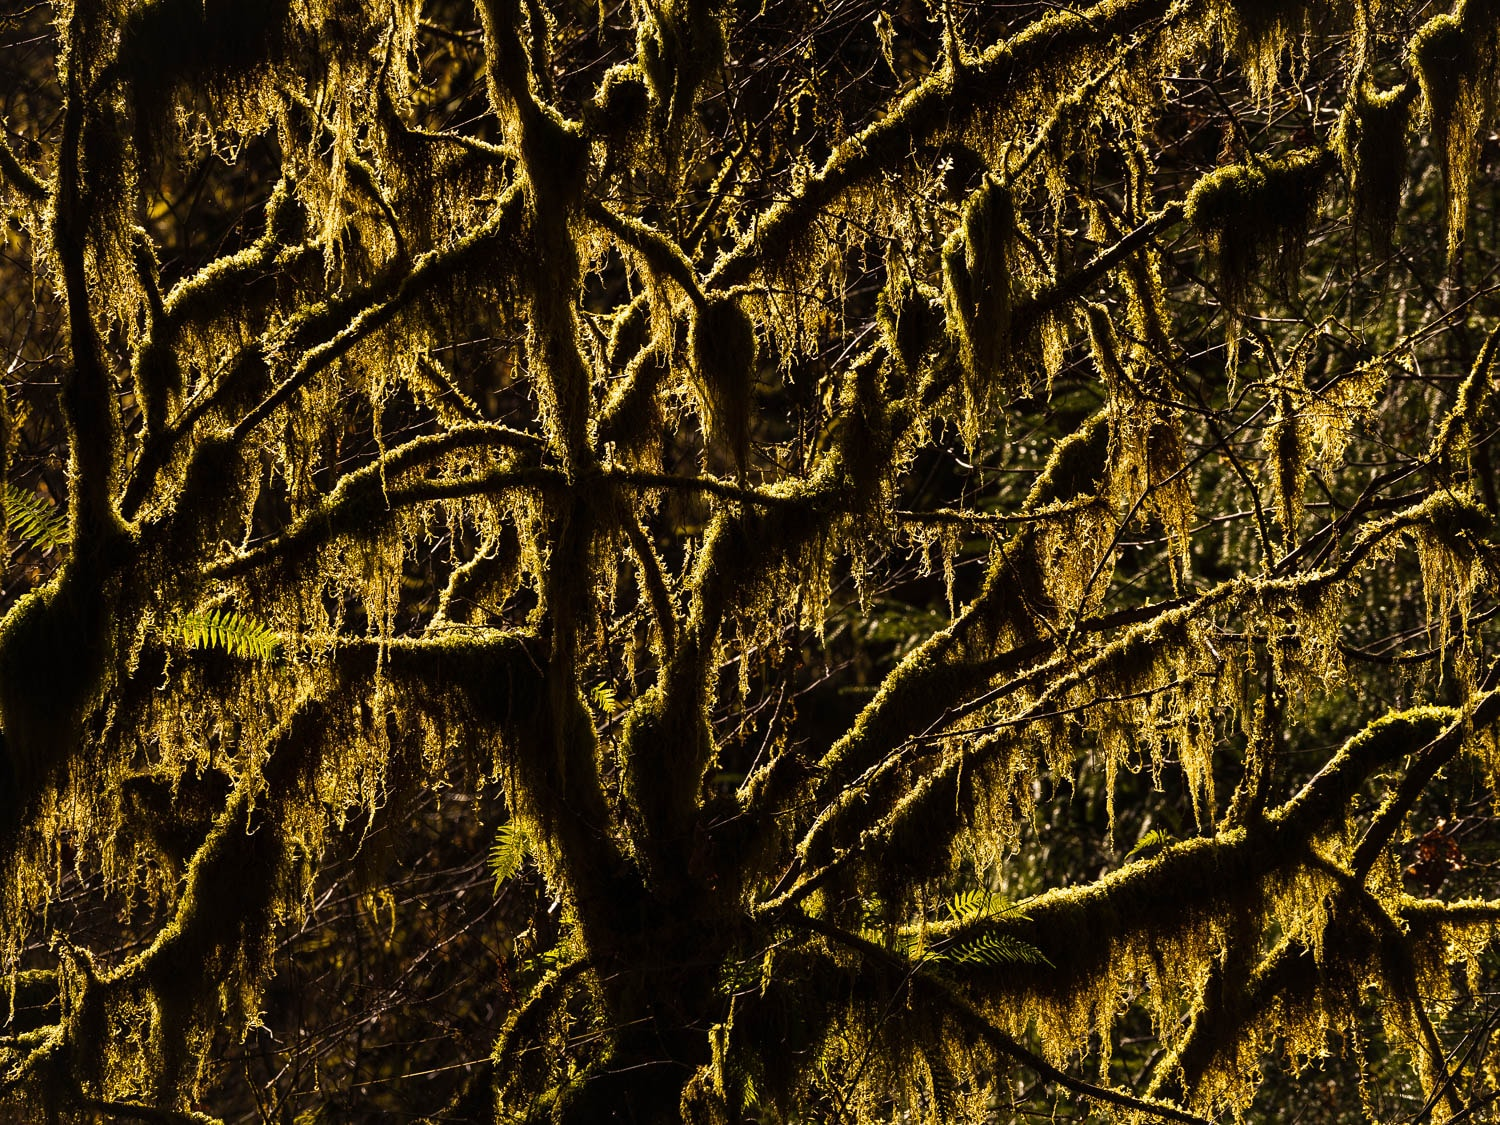 Back lit mosses hang with warm light off tree branches